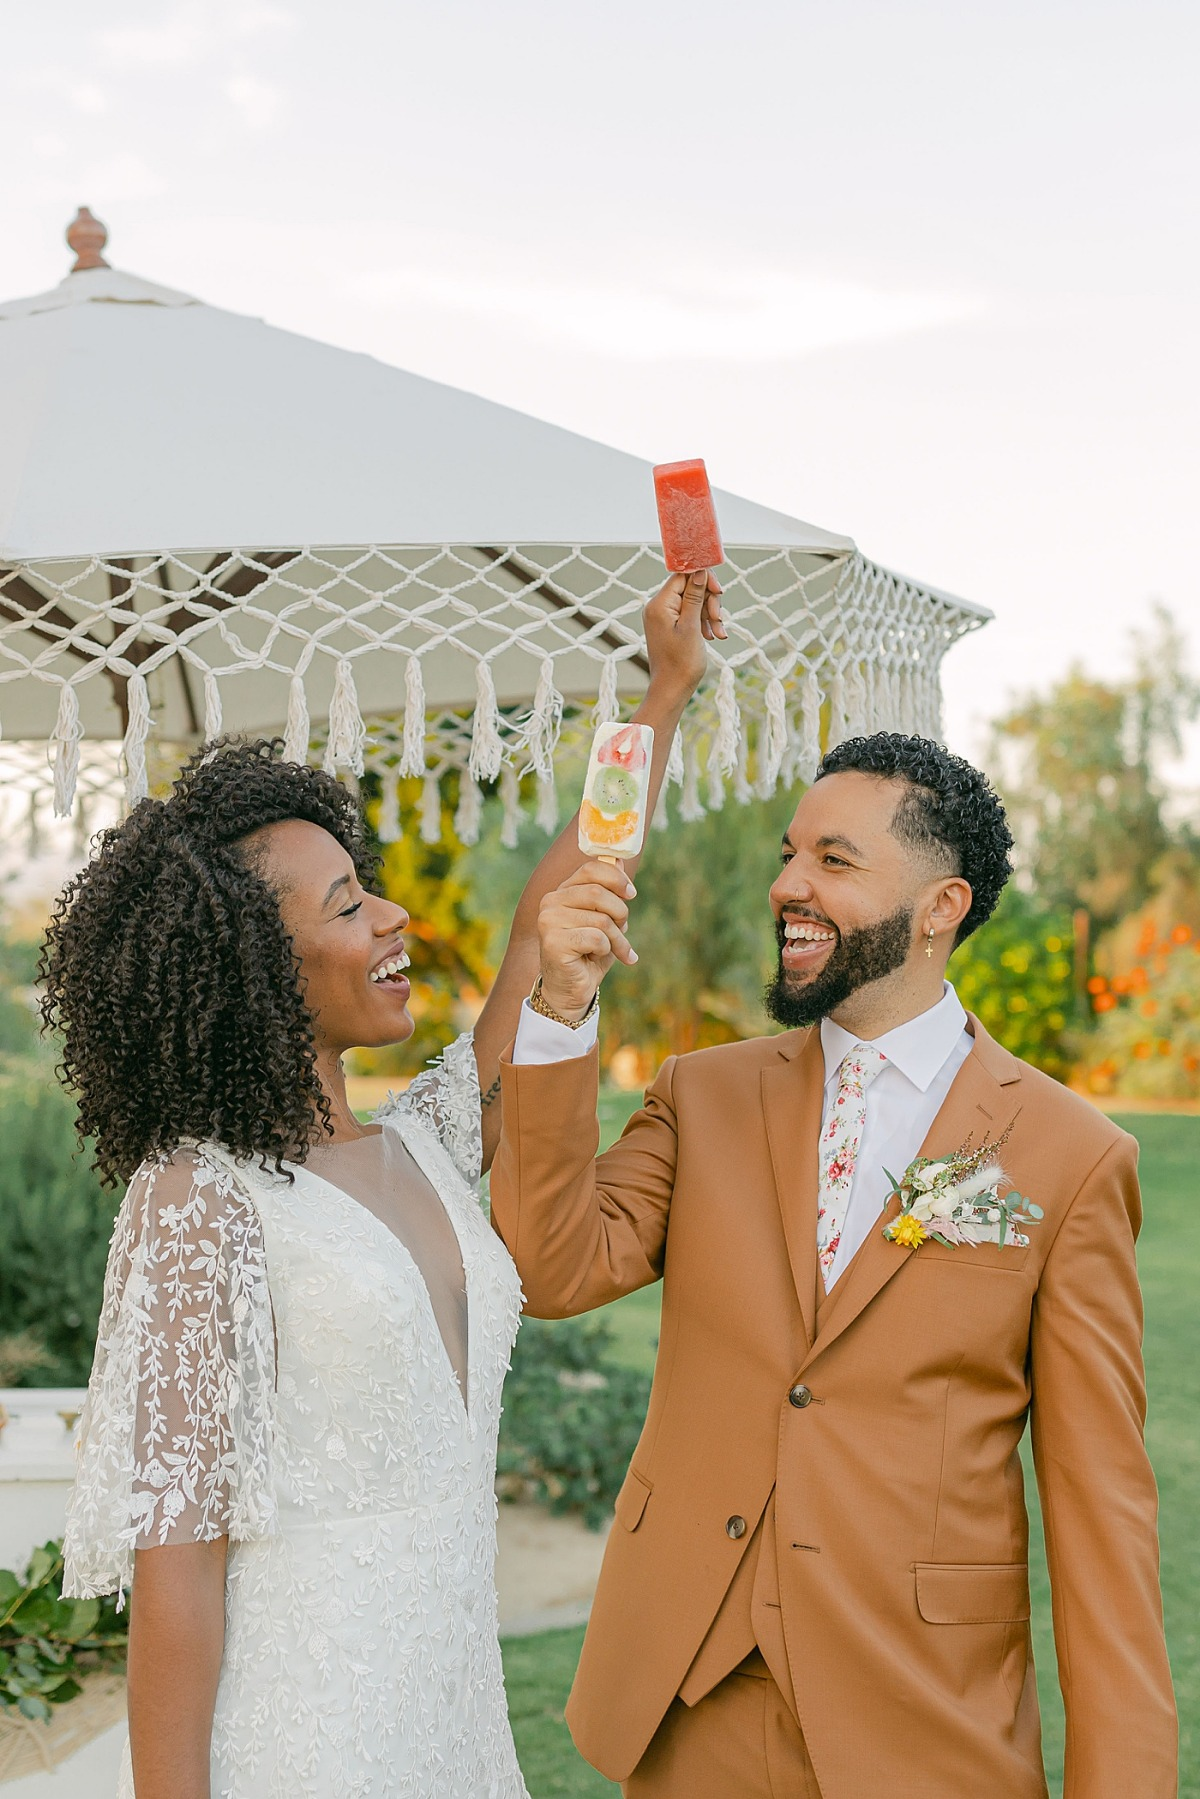 Custom Popsicles at Wedding